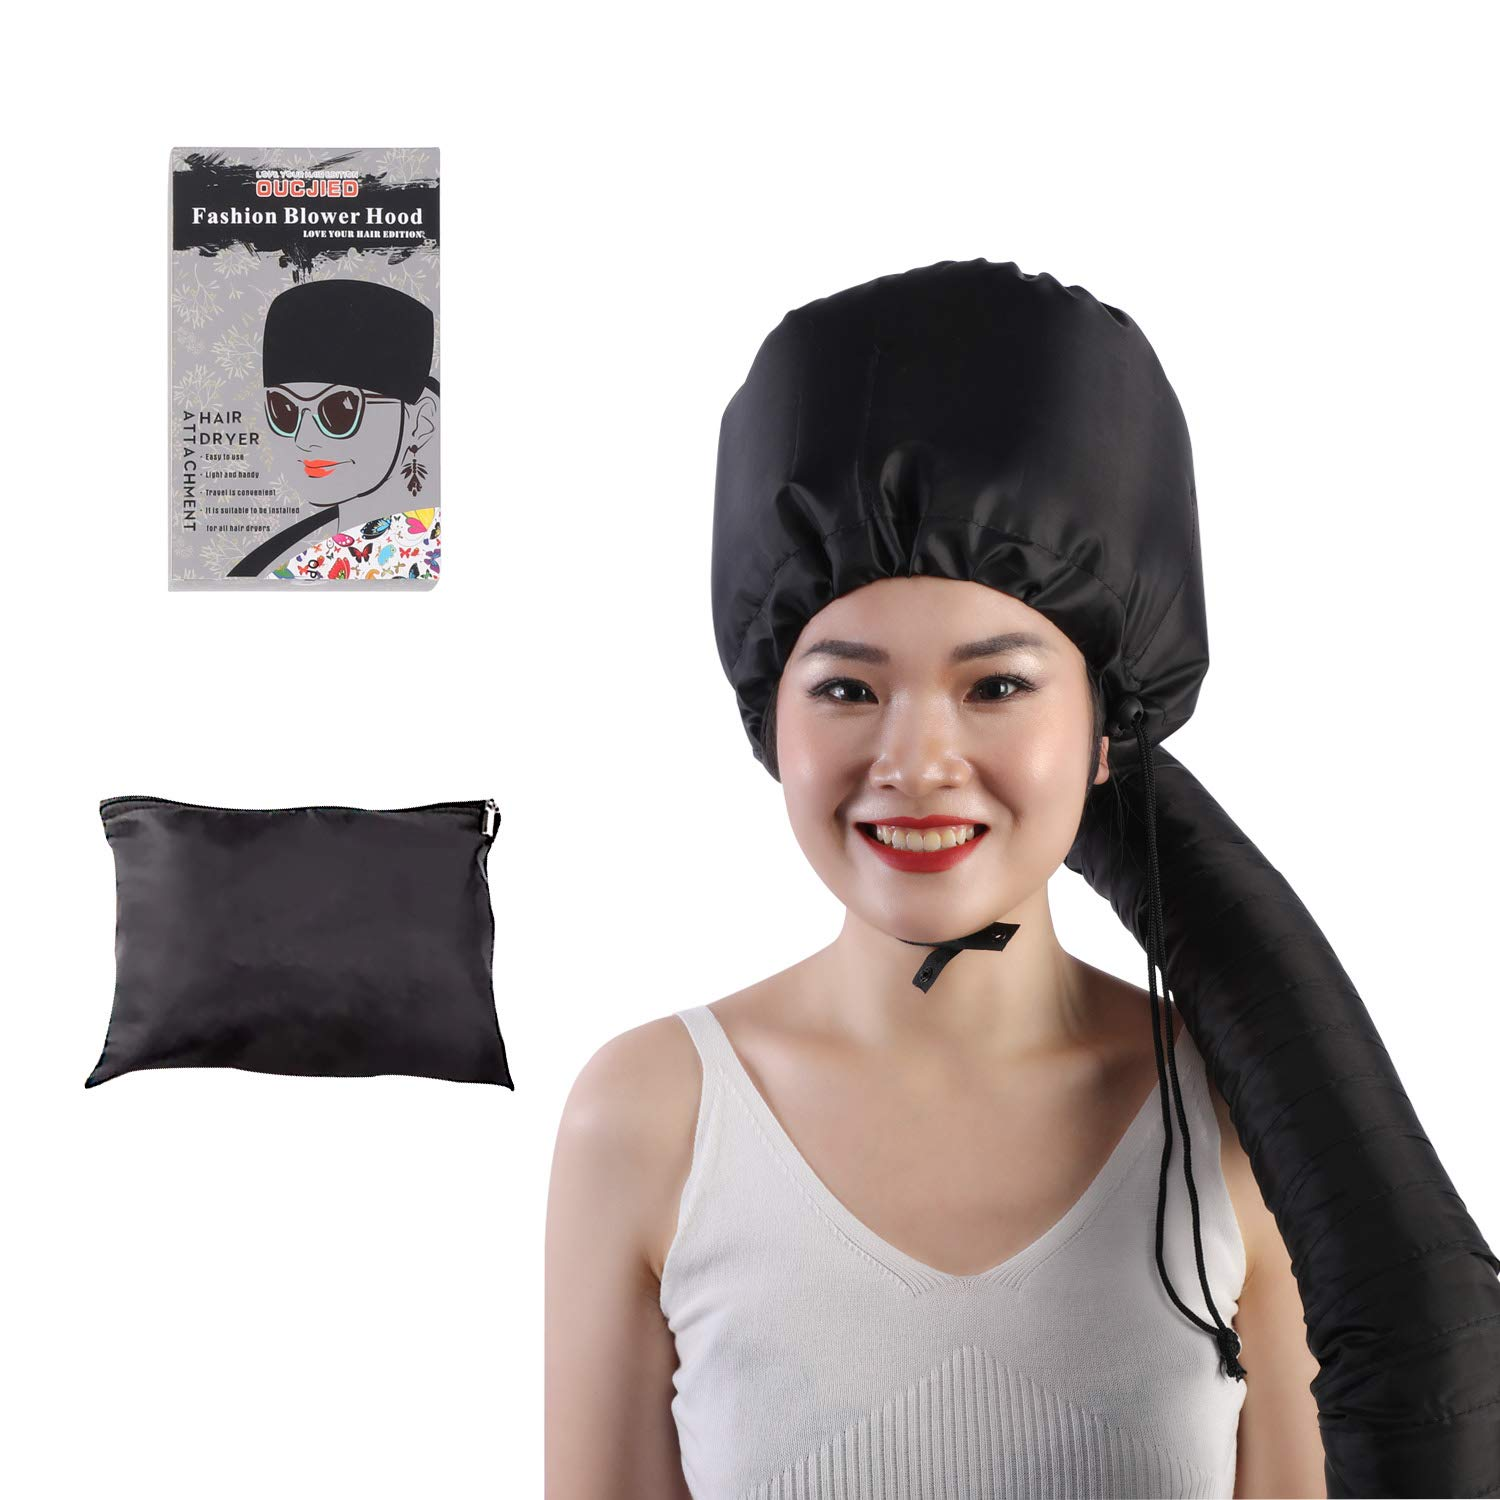 Genuine Free Shipping OUCJIED Free Shipping New Bonnet Hood Hairdryer Conditioning Attachment ,Deep